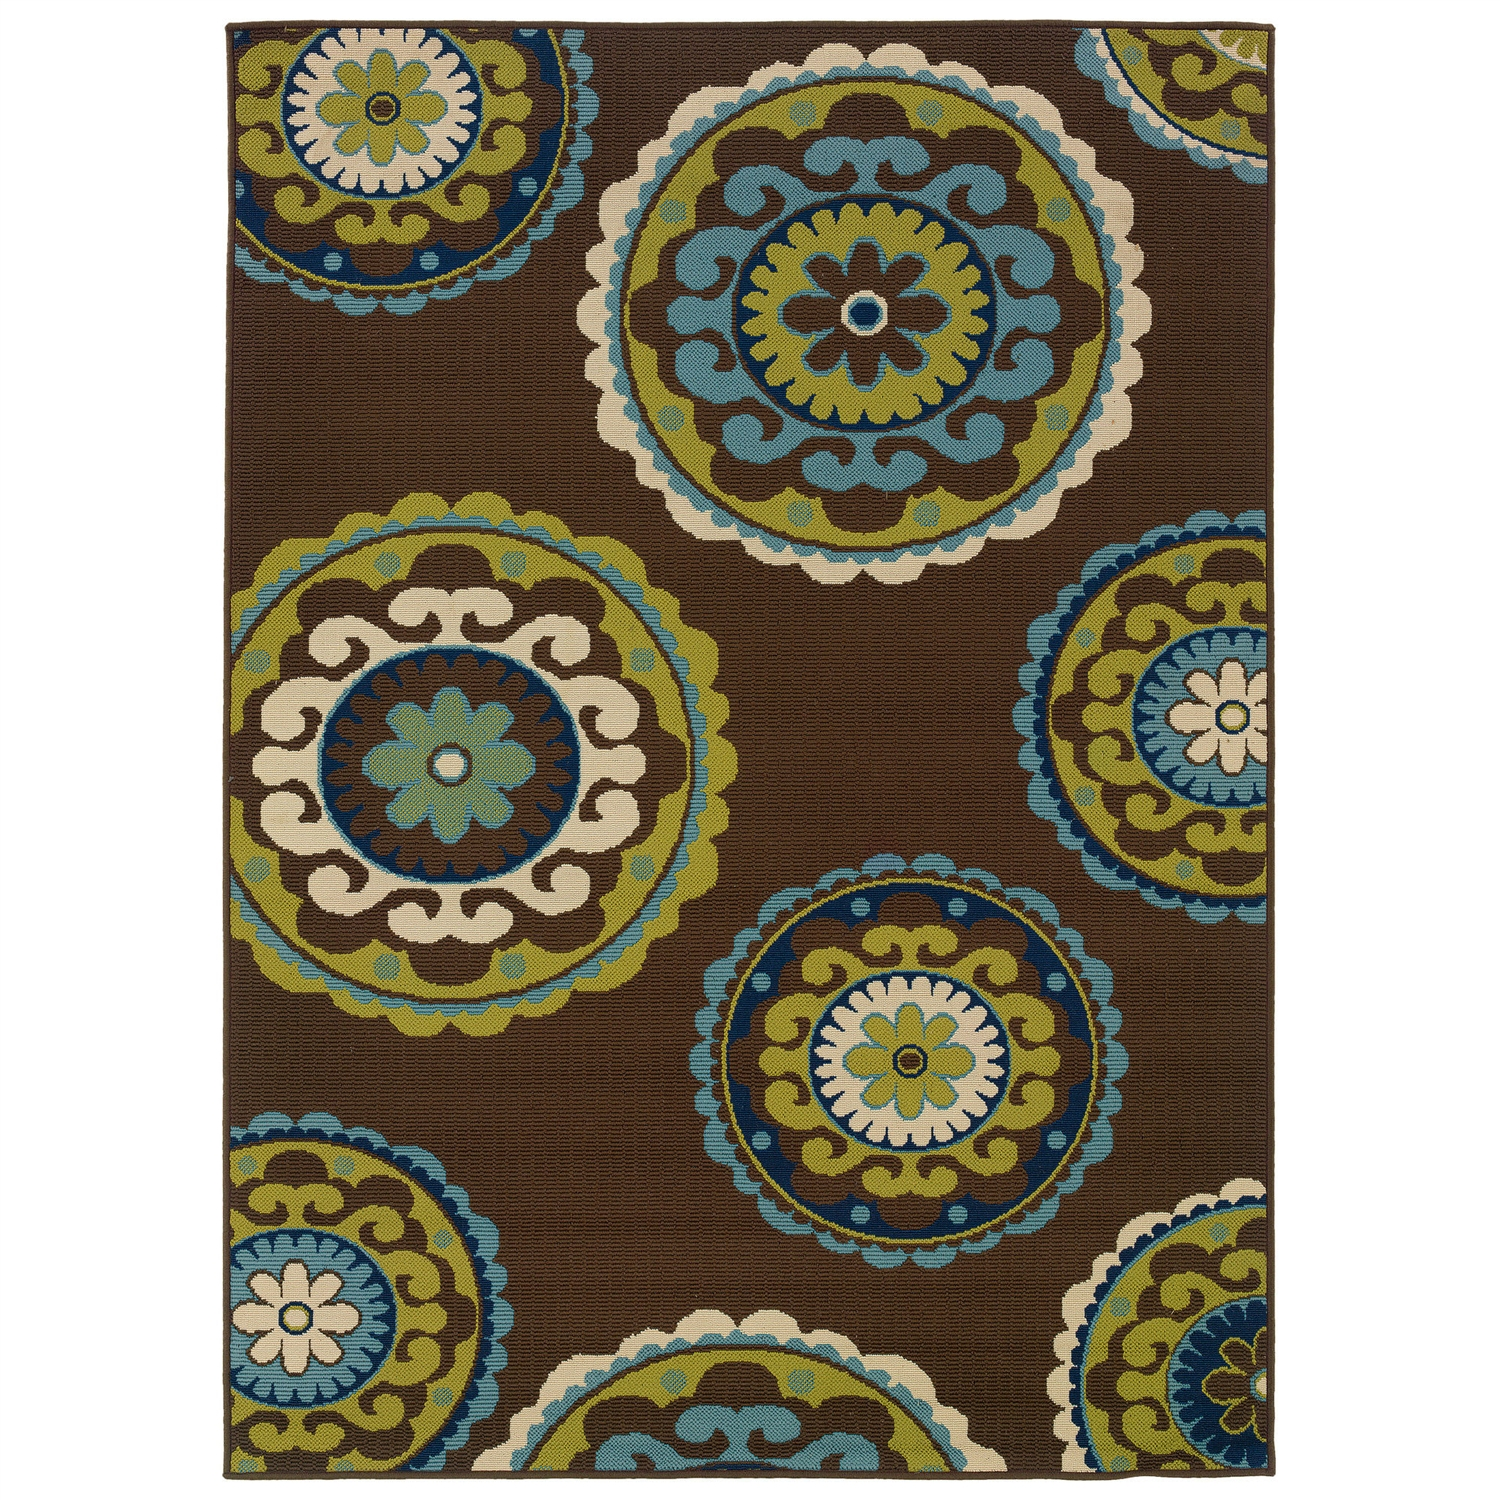 7\'10 x 10\'10 Outdoor/Indoor Area Rug in Brown Teal, Green Yellow ...